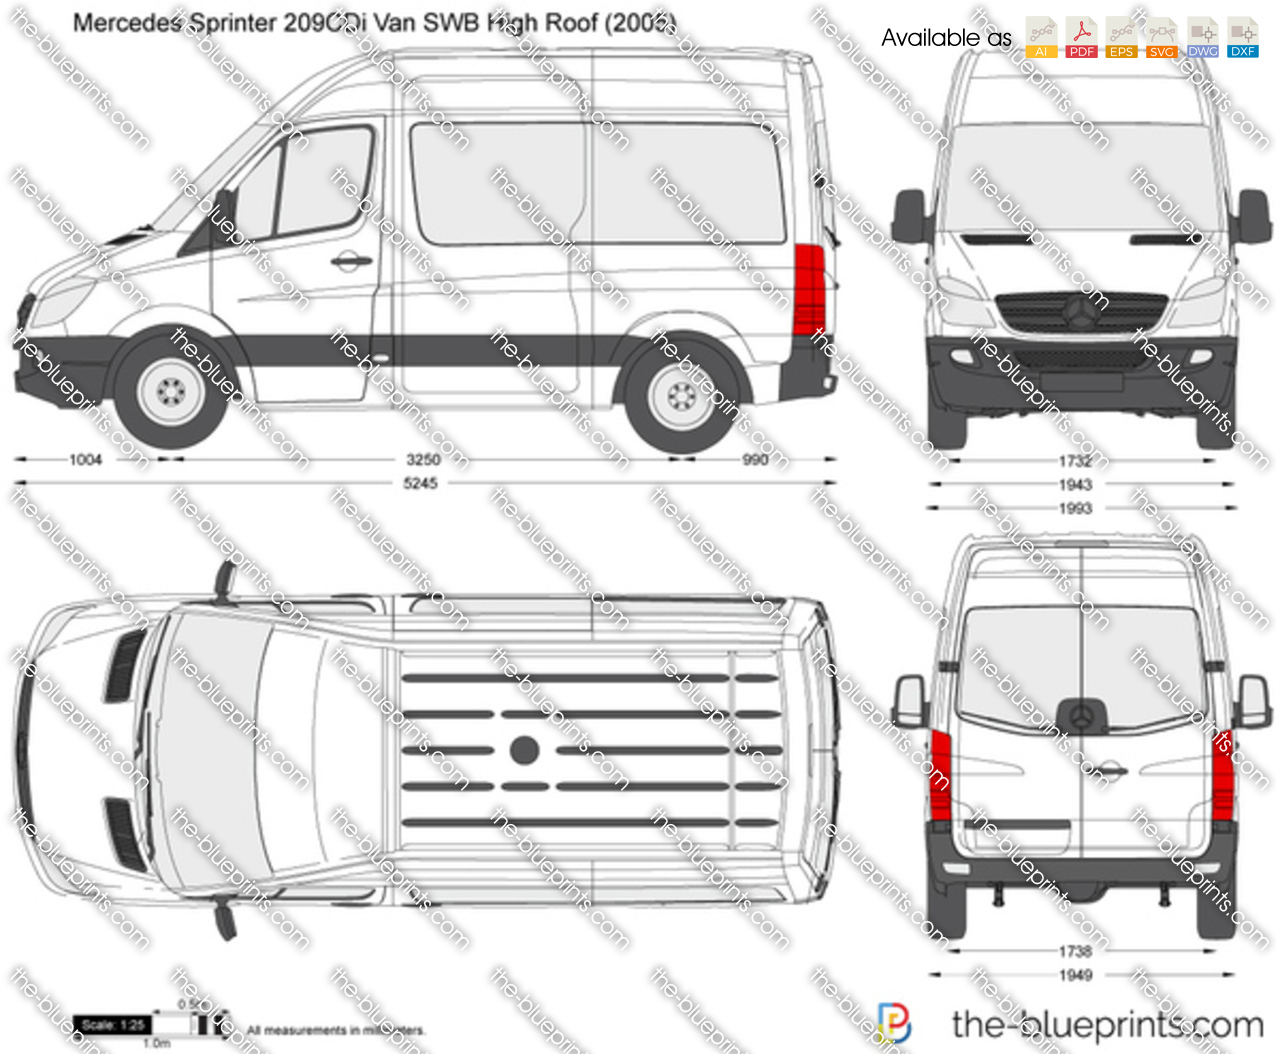 mercedes benz sprinter 209cdi van swb high roof vector drawing. Black Bedroom Furniture Sets. Home Design Ideas